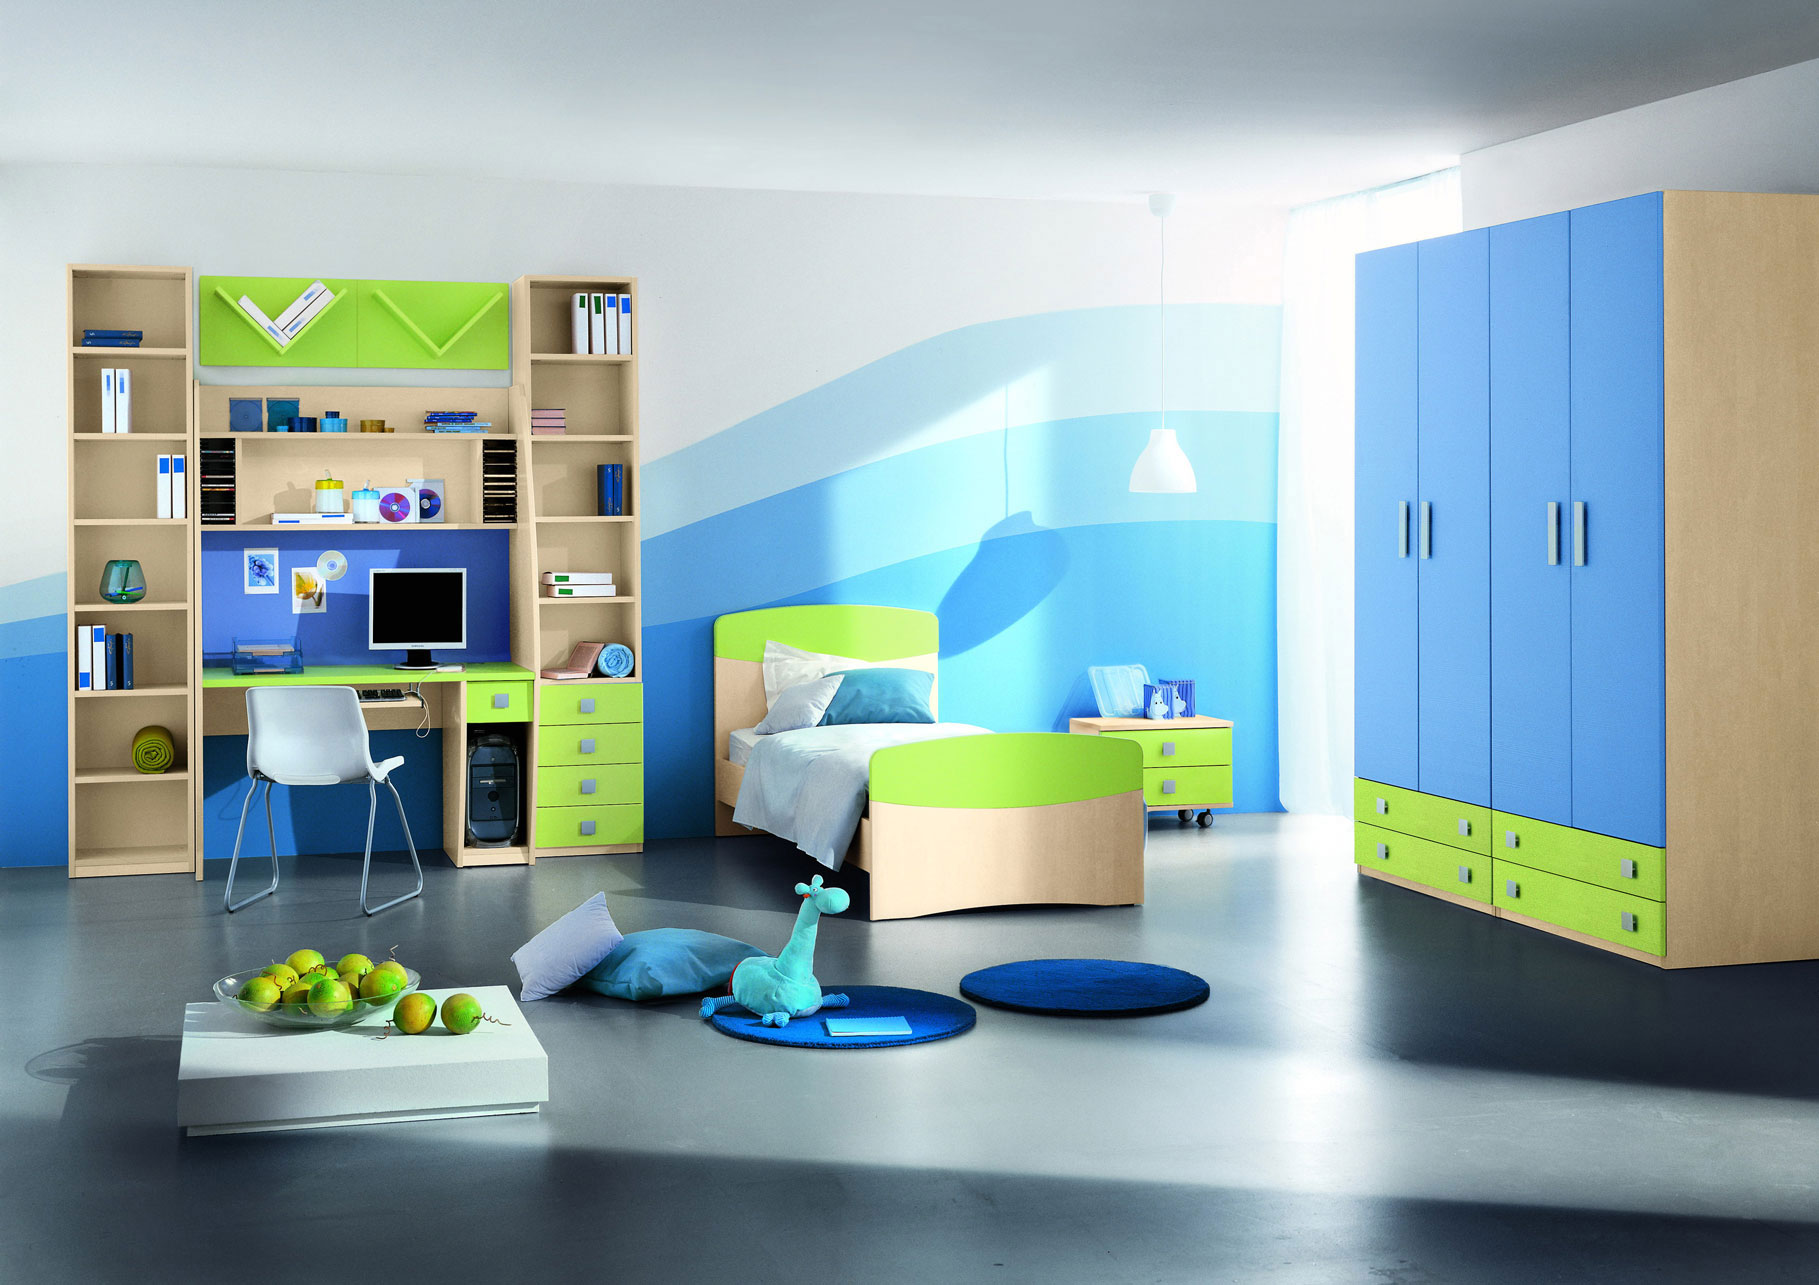 Amazing Kids Bedroom Ideas Blue Room 1819 x 1285 · 287 kB · jpeg